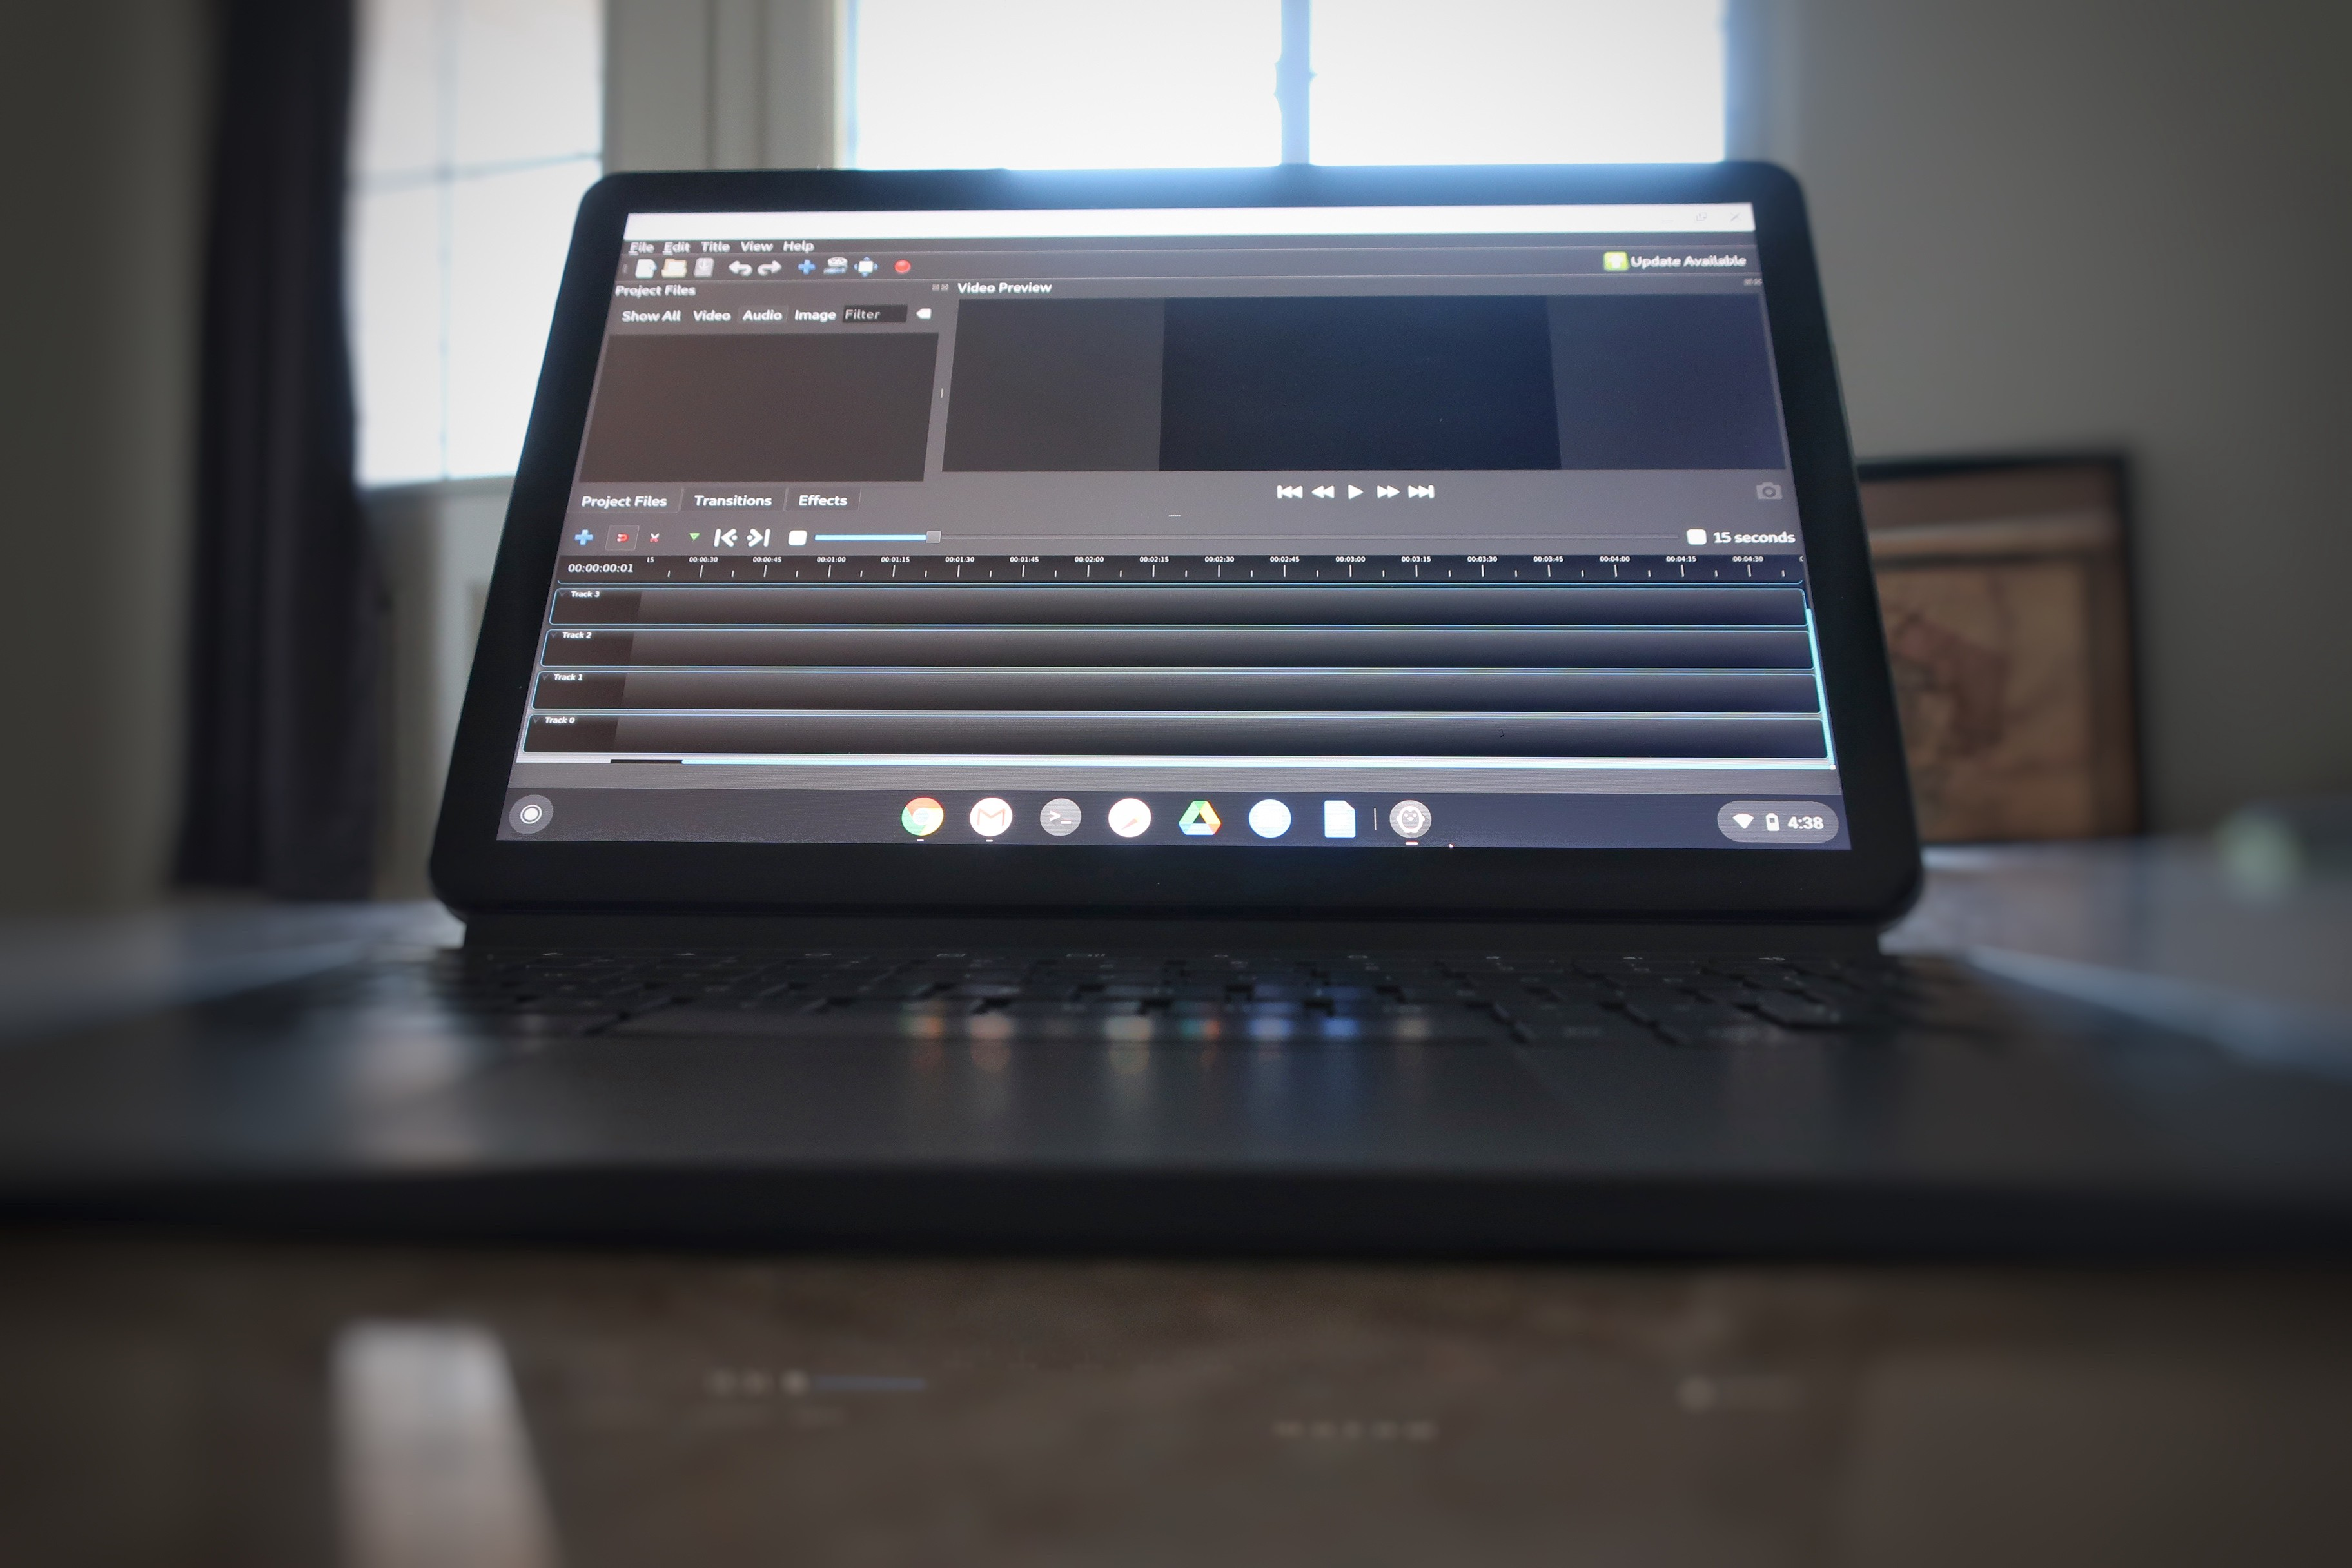 Video Editing On The Lenovo Duet Chrome O Xperts